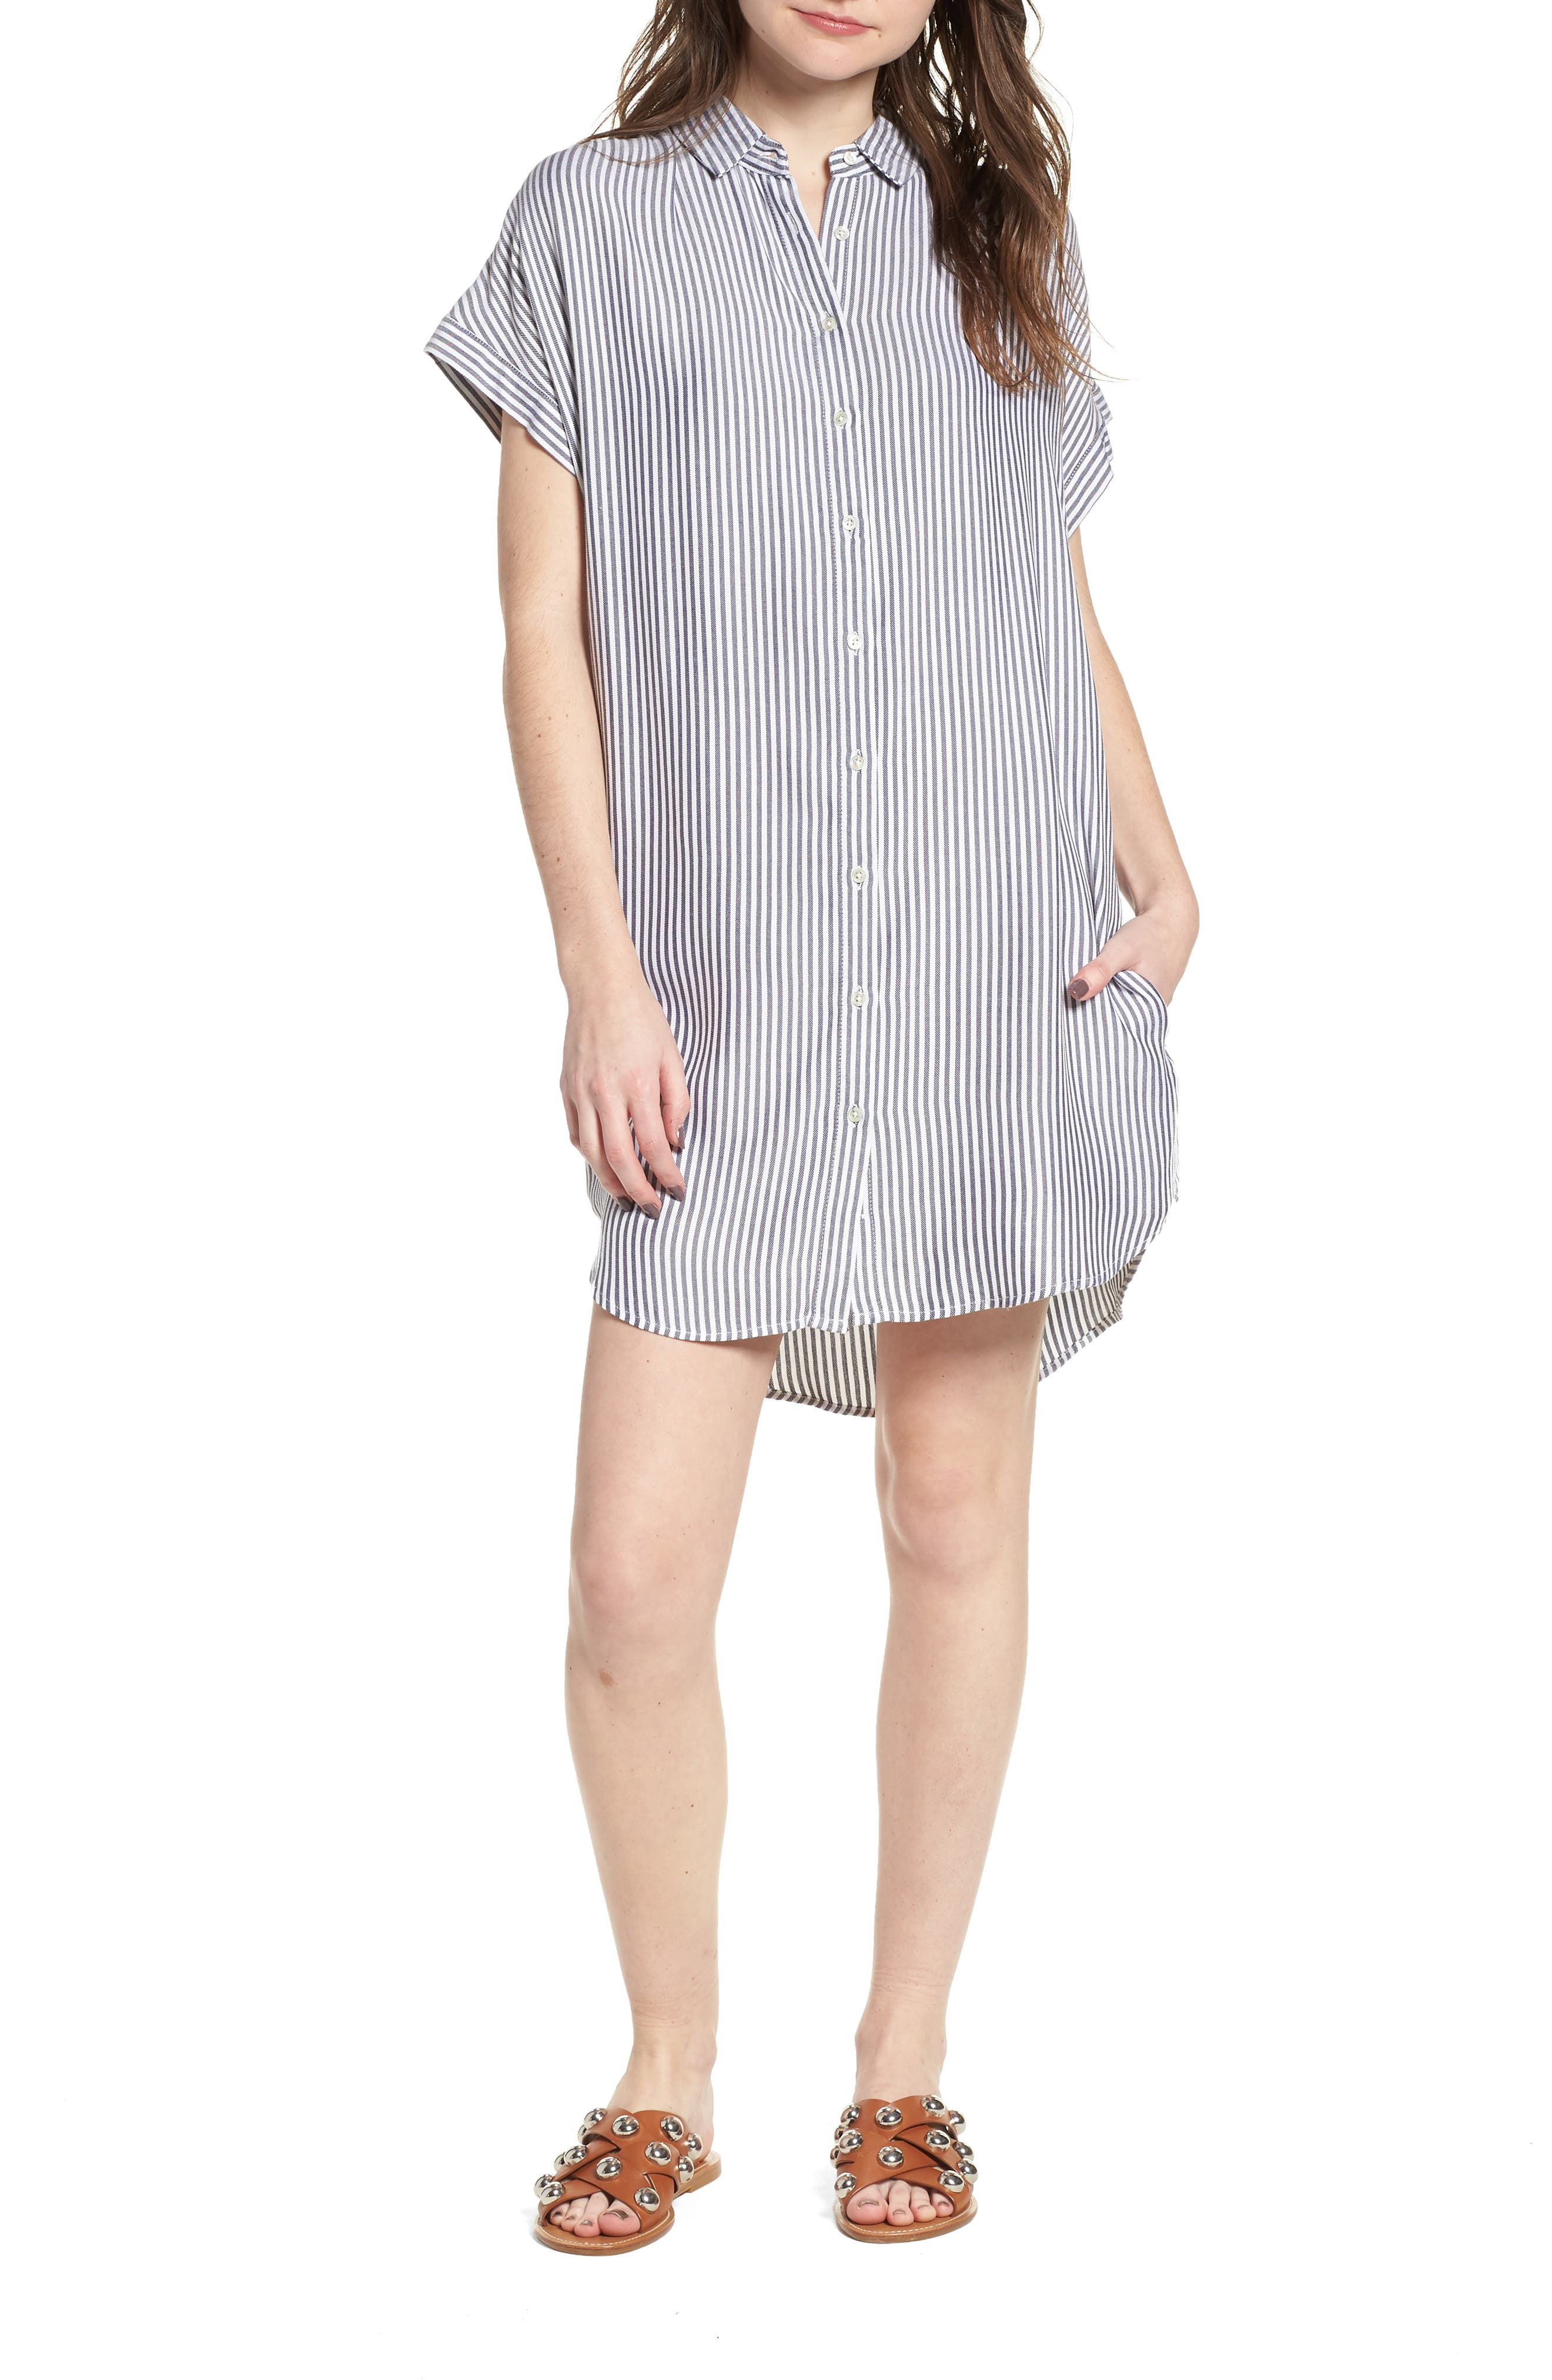 Alternate Image 1 Selected - Thread & Supply Skipper Stripe Shirtdress